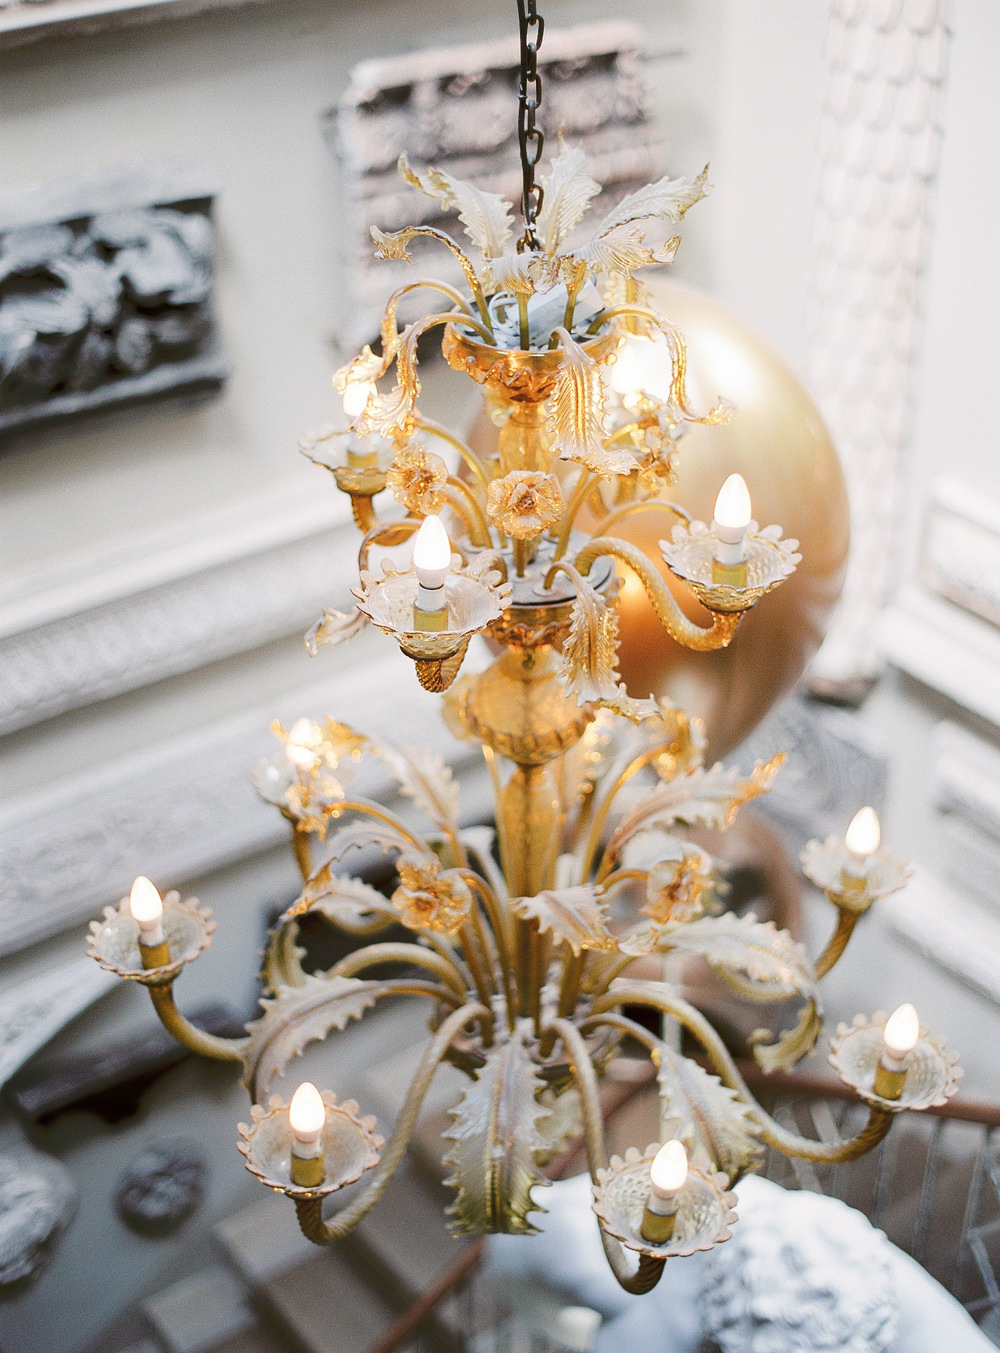 Chandelier aynhoe park staircase